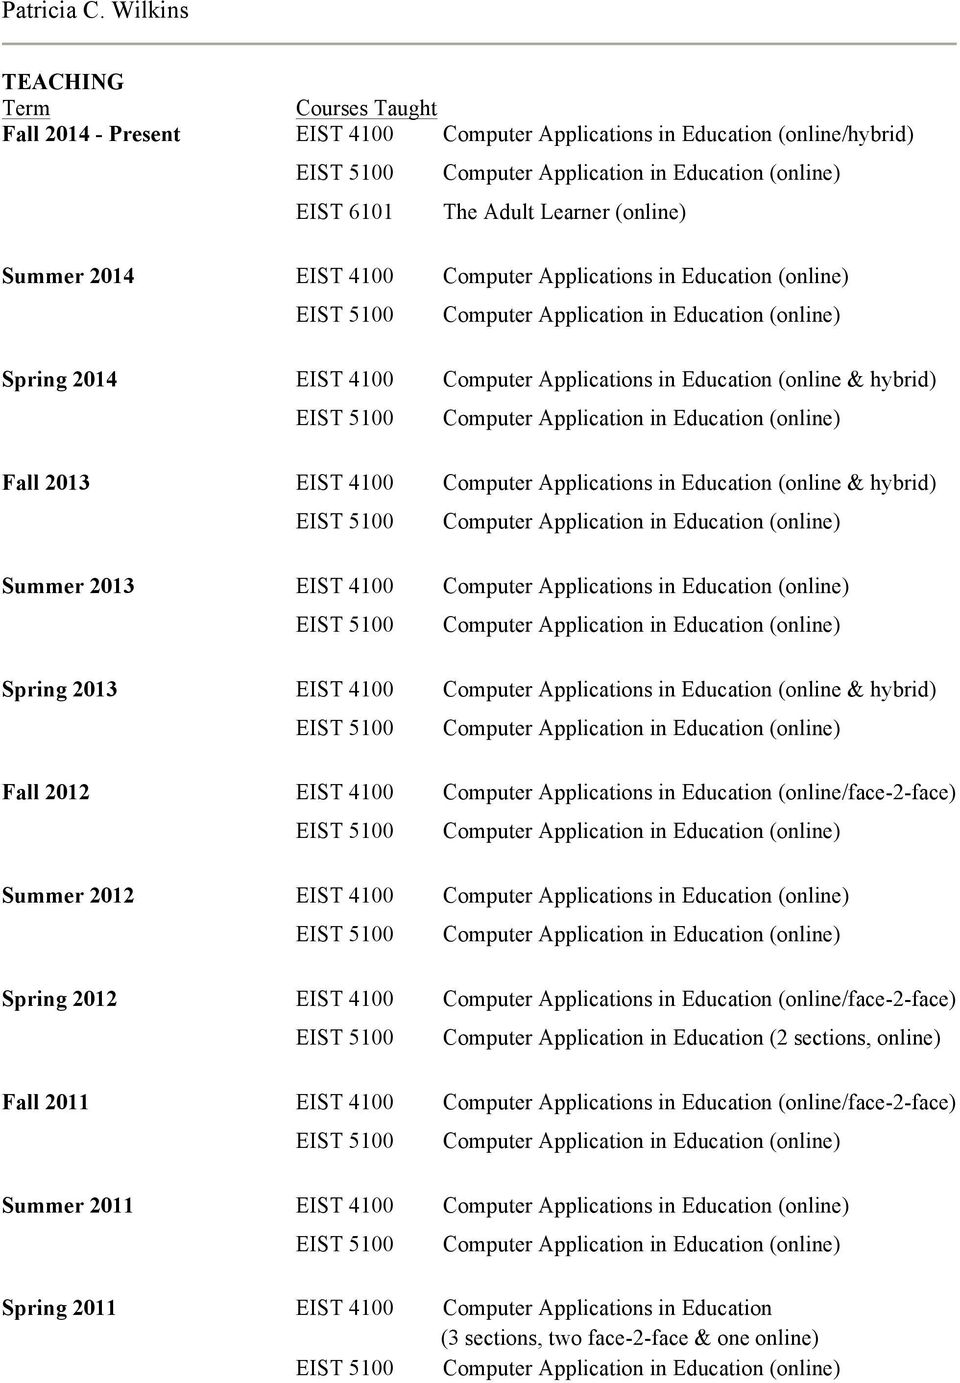 Applications in Education (online) Spring 2013 EIST 4100 Computer Applications in Education (online & hybrid) Fall 2012 EIST 4100 Computer Applications in Education (online/face-2-face) Summer 2012